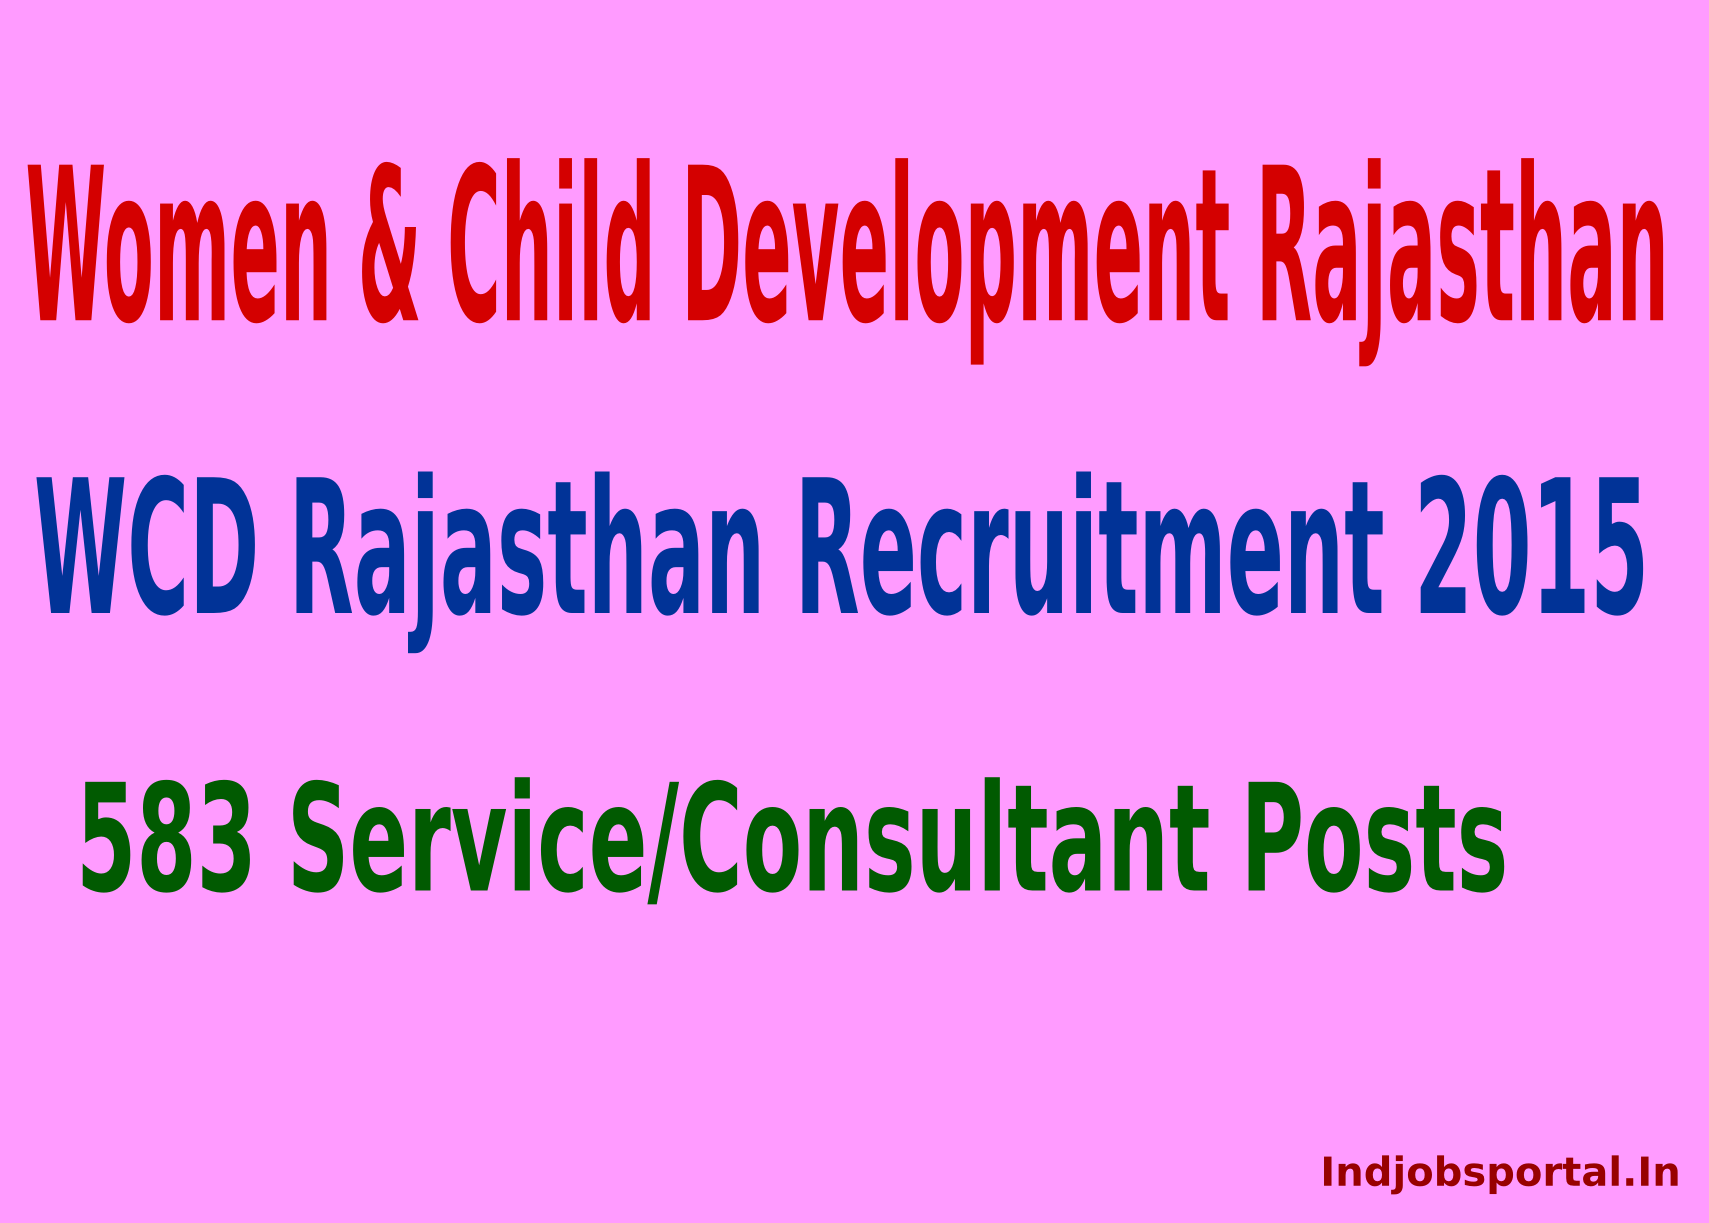 WCD Rajasthan Recruitment 2015 Apply Online For 583 Service/Consultant Posts